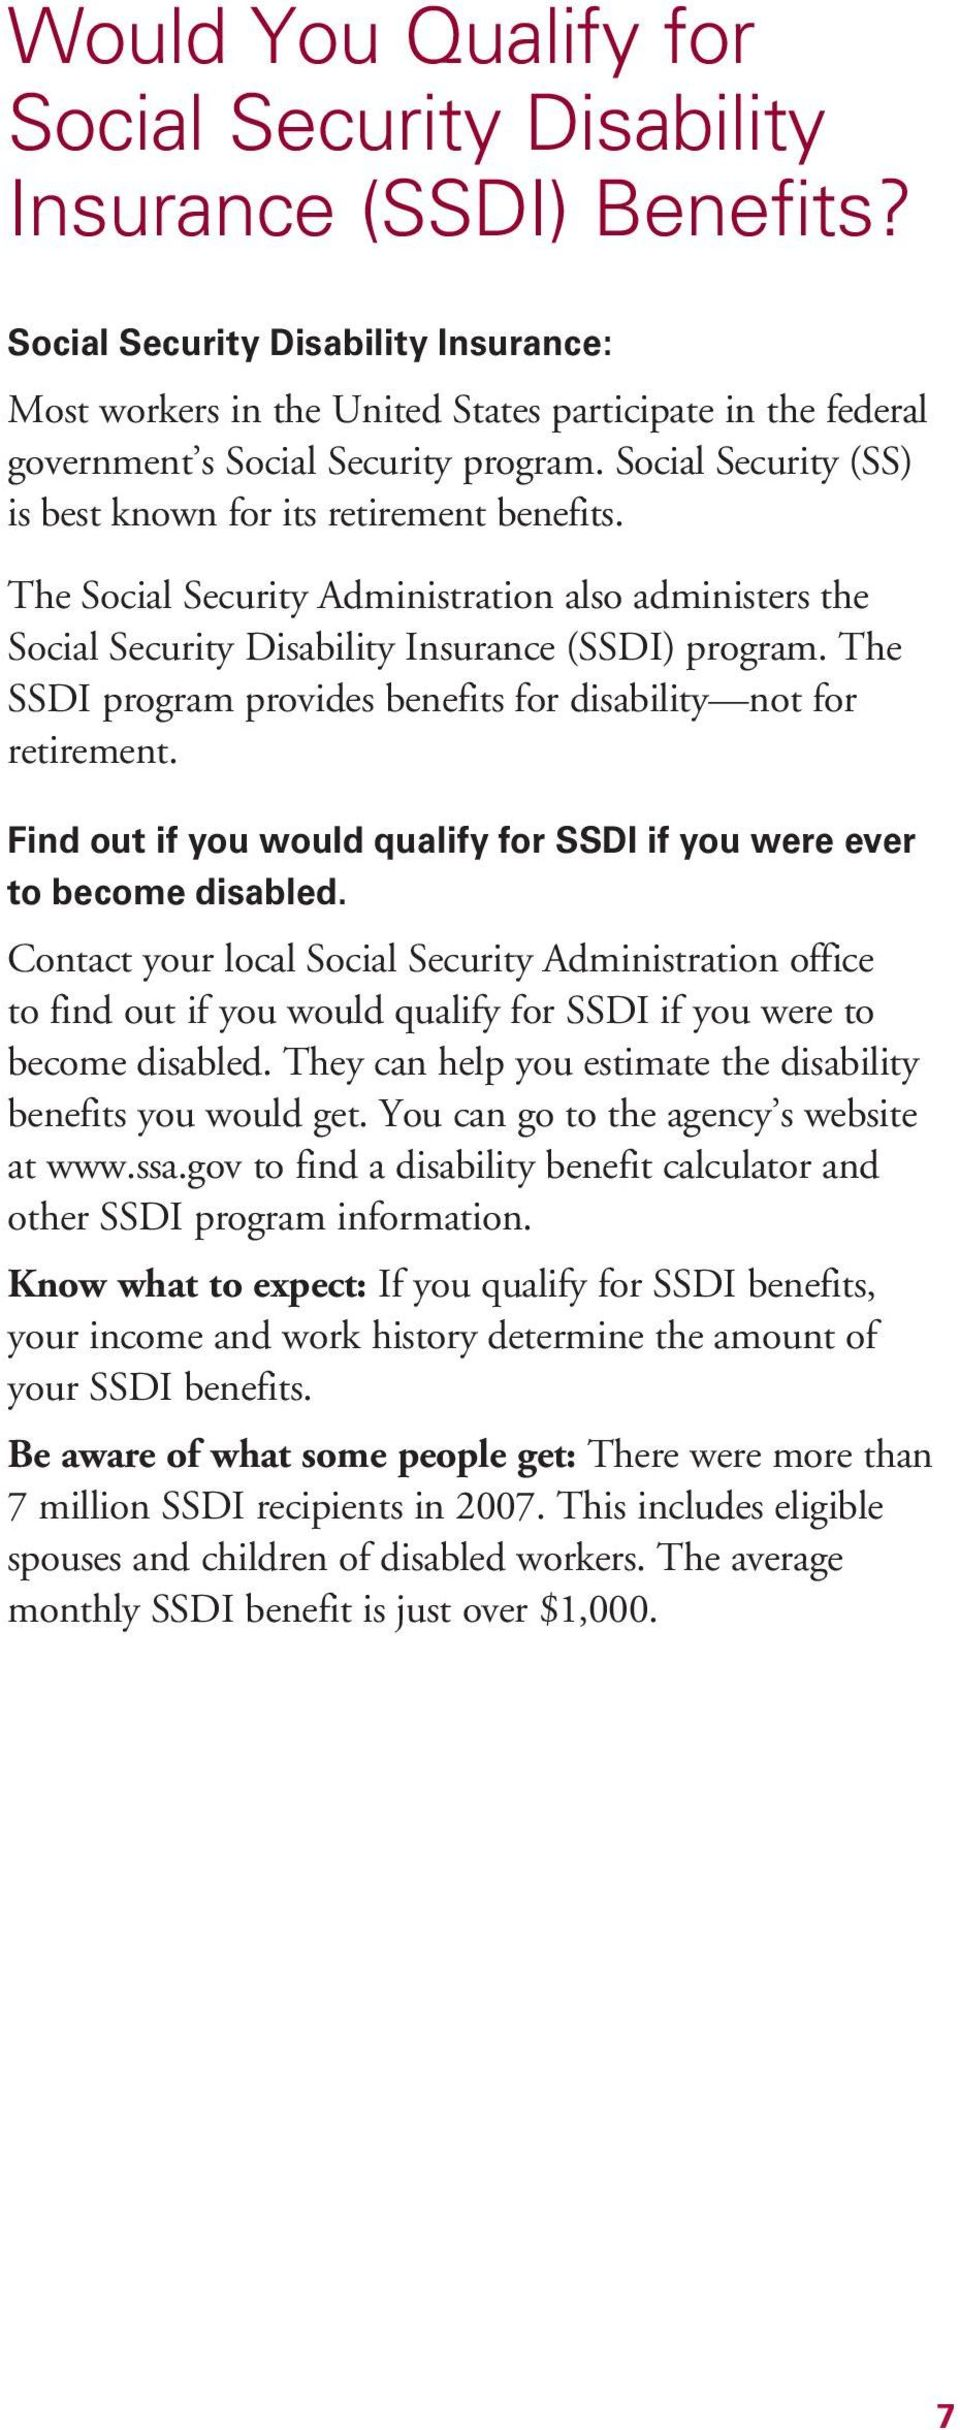 The Social Security Administration also administers the Social Security Disability Insurance (SSDI) program. The SSDI program provides benefits for disability not for retirement.